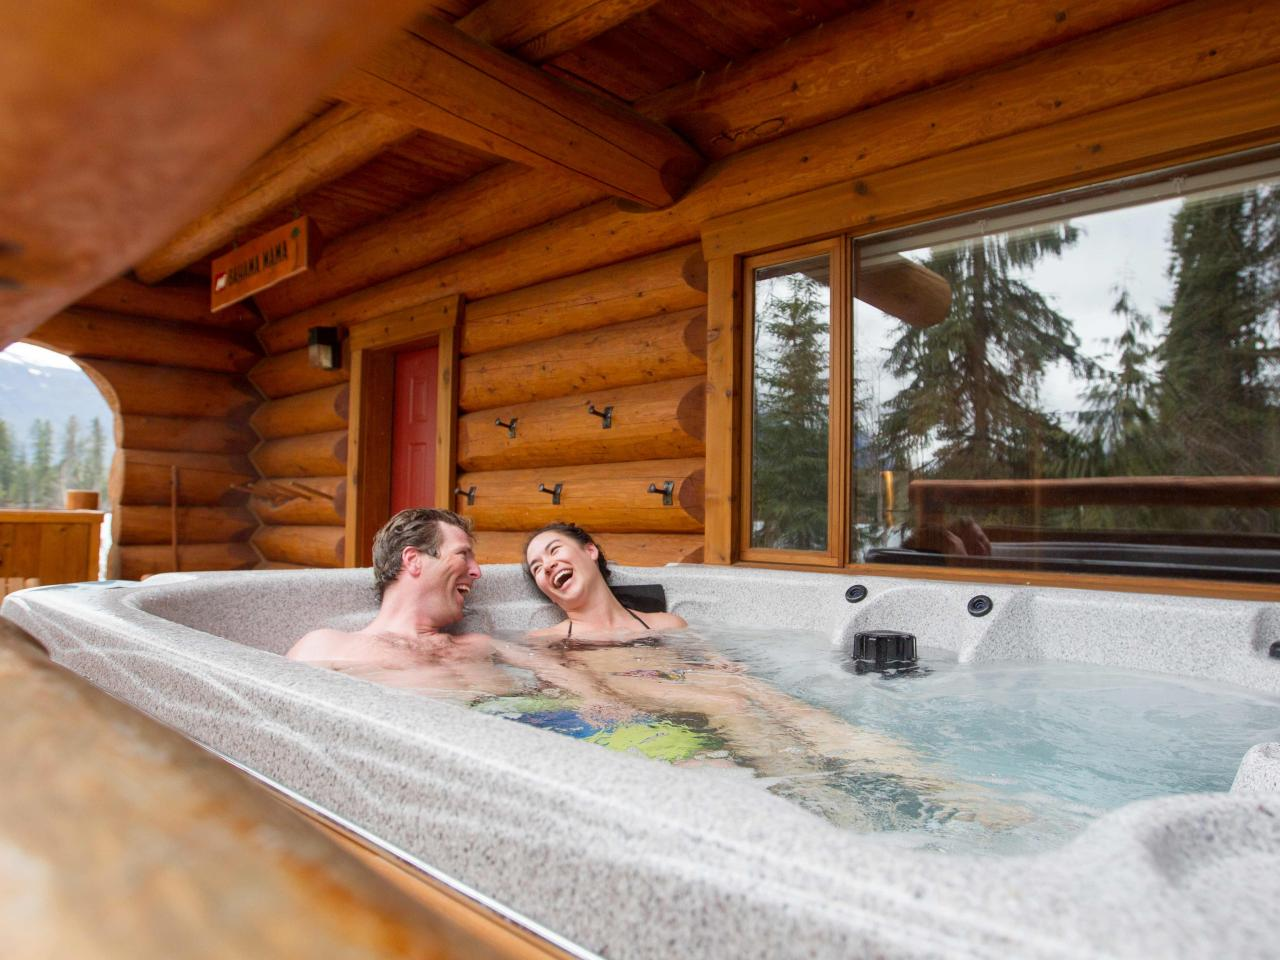 Relax in Hot Tub after epic ski day at Mike Wiegele Heli-skiing resort